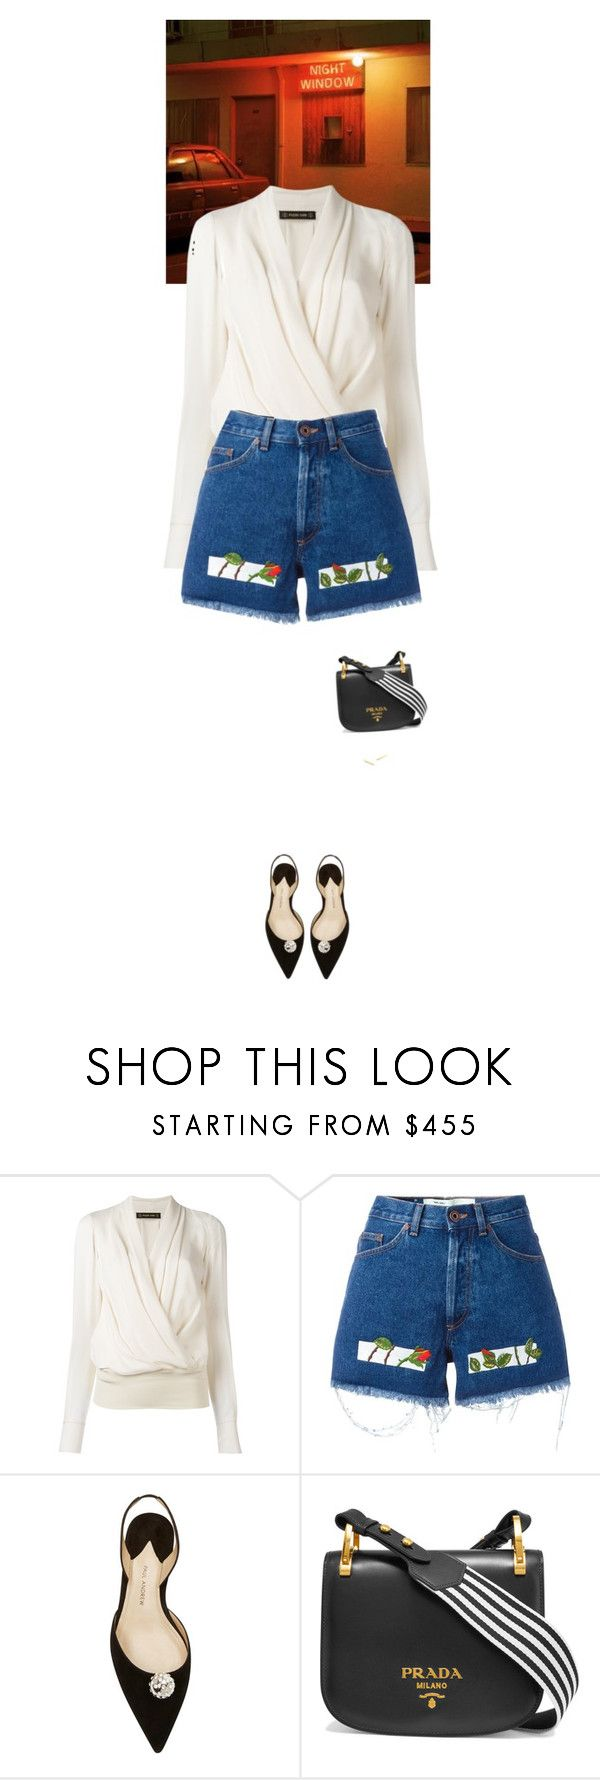 """""""Outfit of the Day"""" by wizmurphy ❤ liked on Polyvore featuring Plein Sud, Off-White, Paul Andrew, Prada, Gorjana, ootd, jeanshorts and denimshorts"""